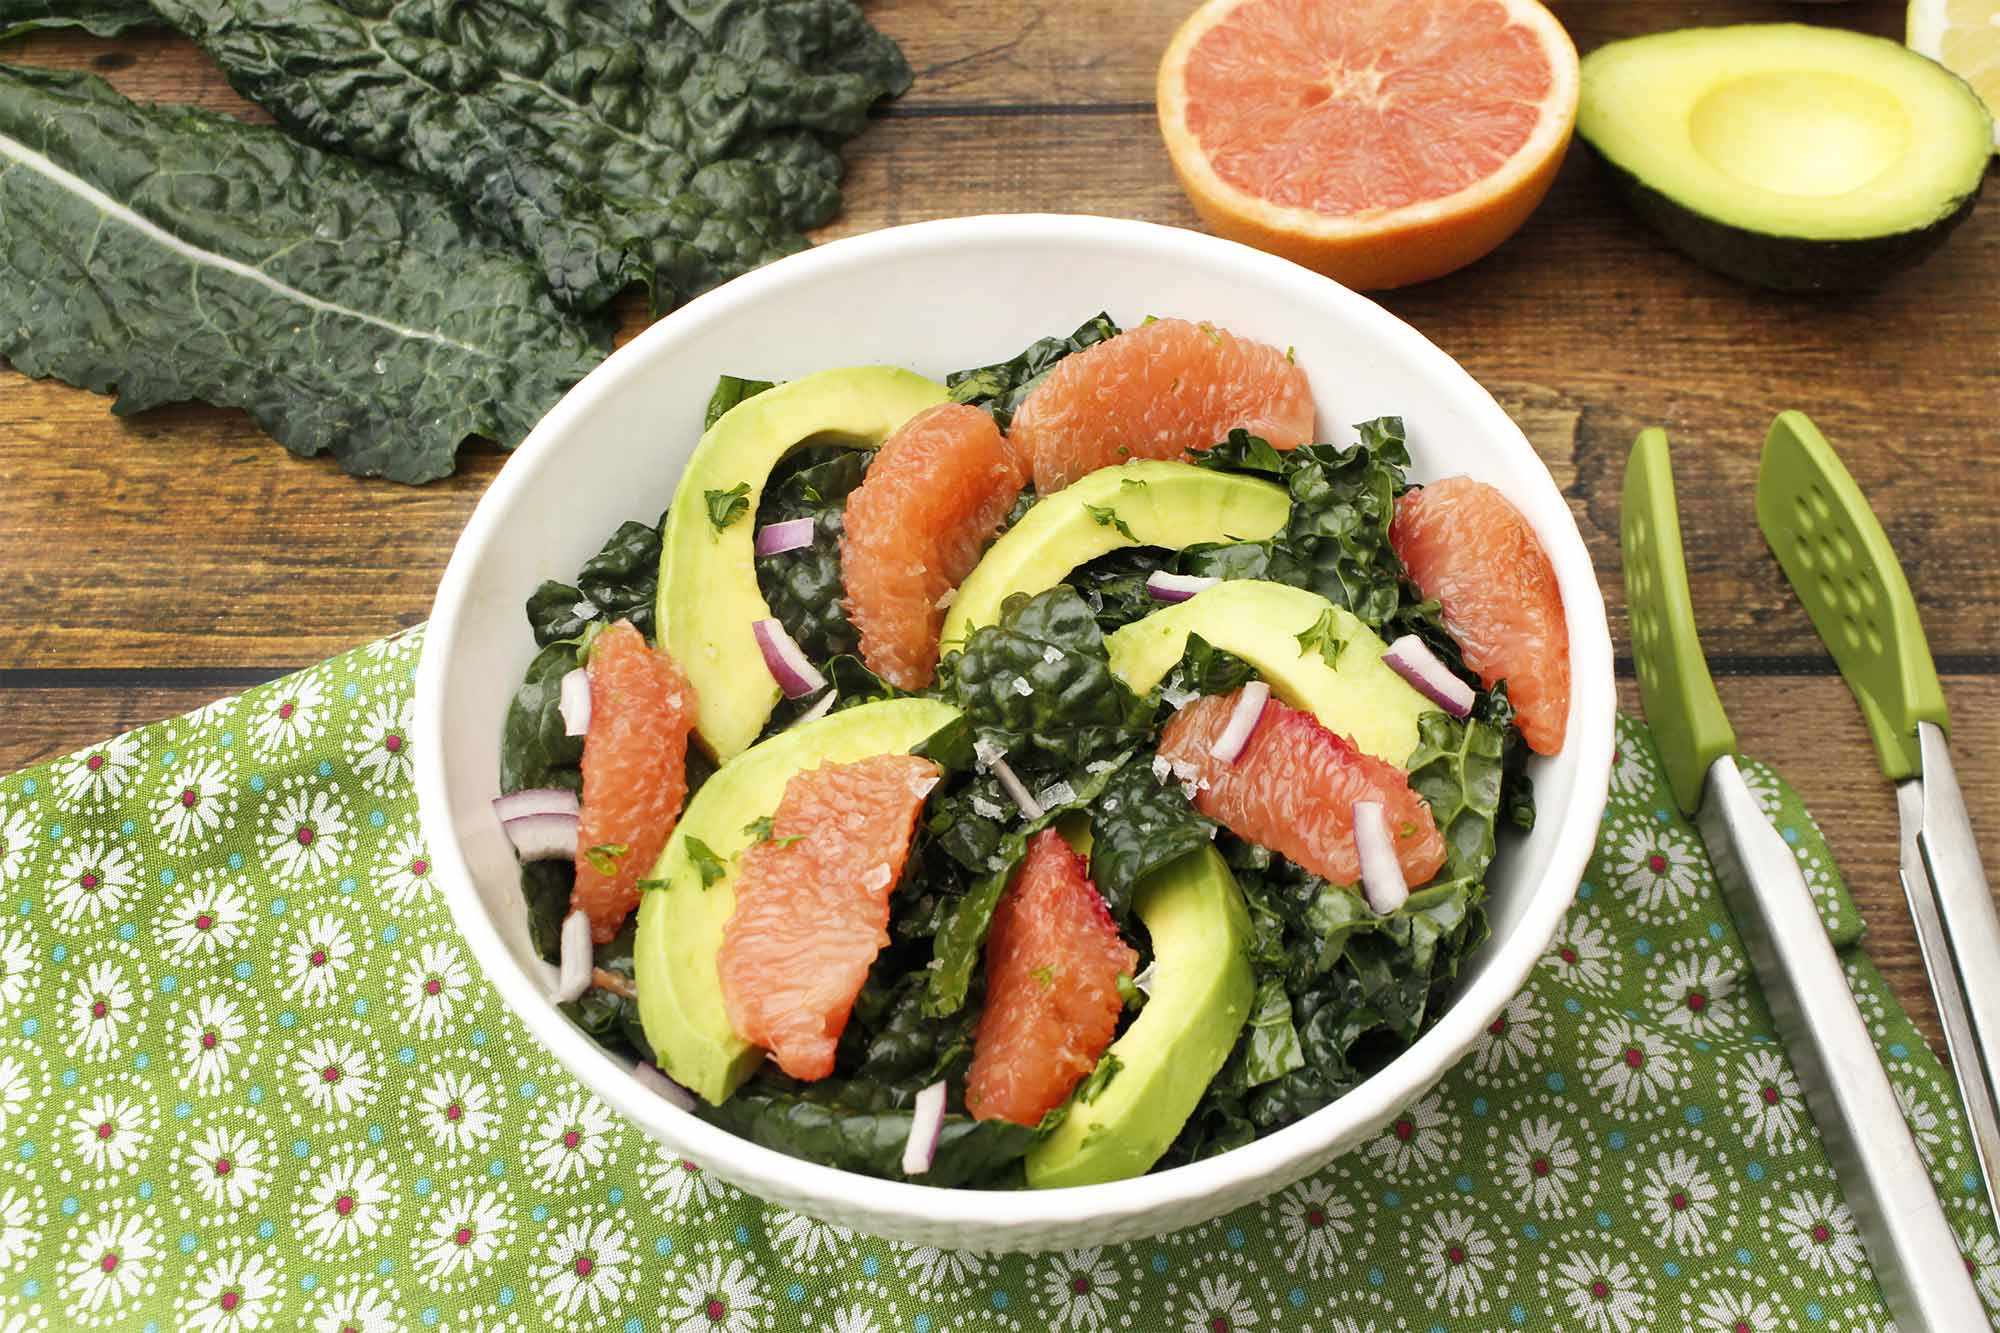 Kale and Grapefruit Salad